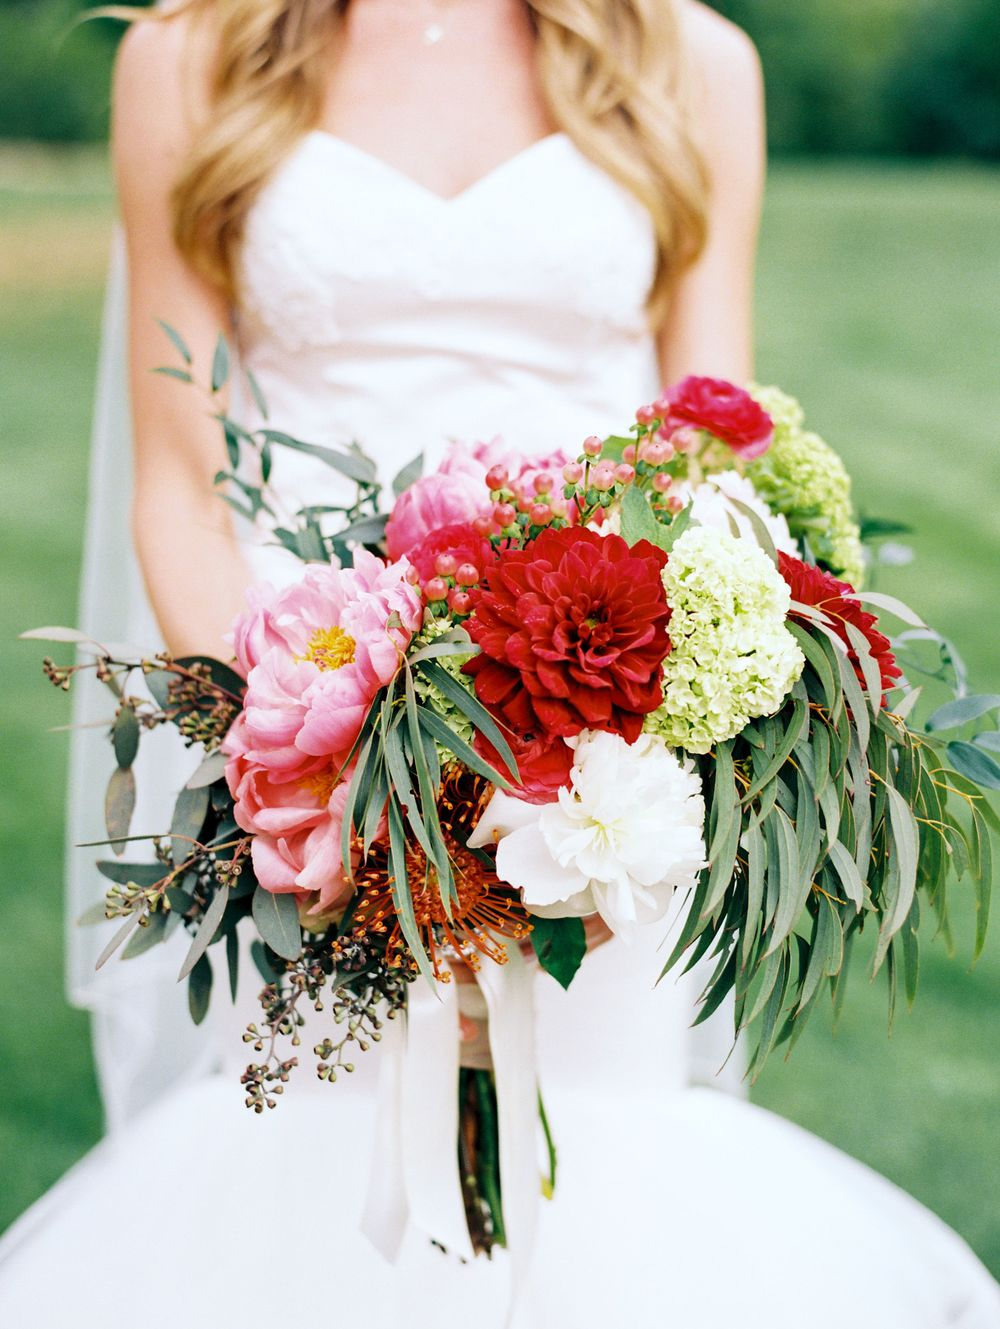 Fairie's Petticoat and Coral Charm Peonies, Red Dahlias, Orange Pin Cushion Protea, Coral Hypericum Berries, Red Ranunculus, Viburnum, Willow and Seeded Eucalyptus.